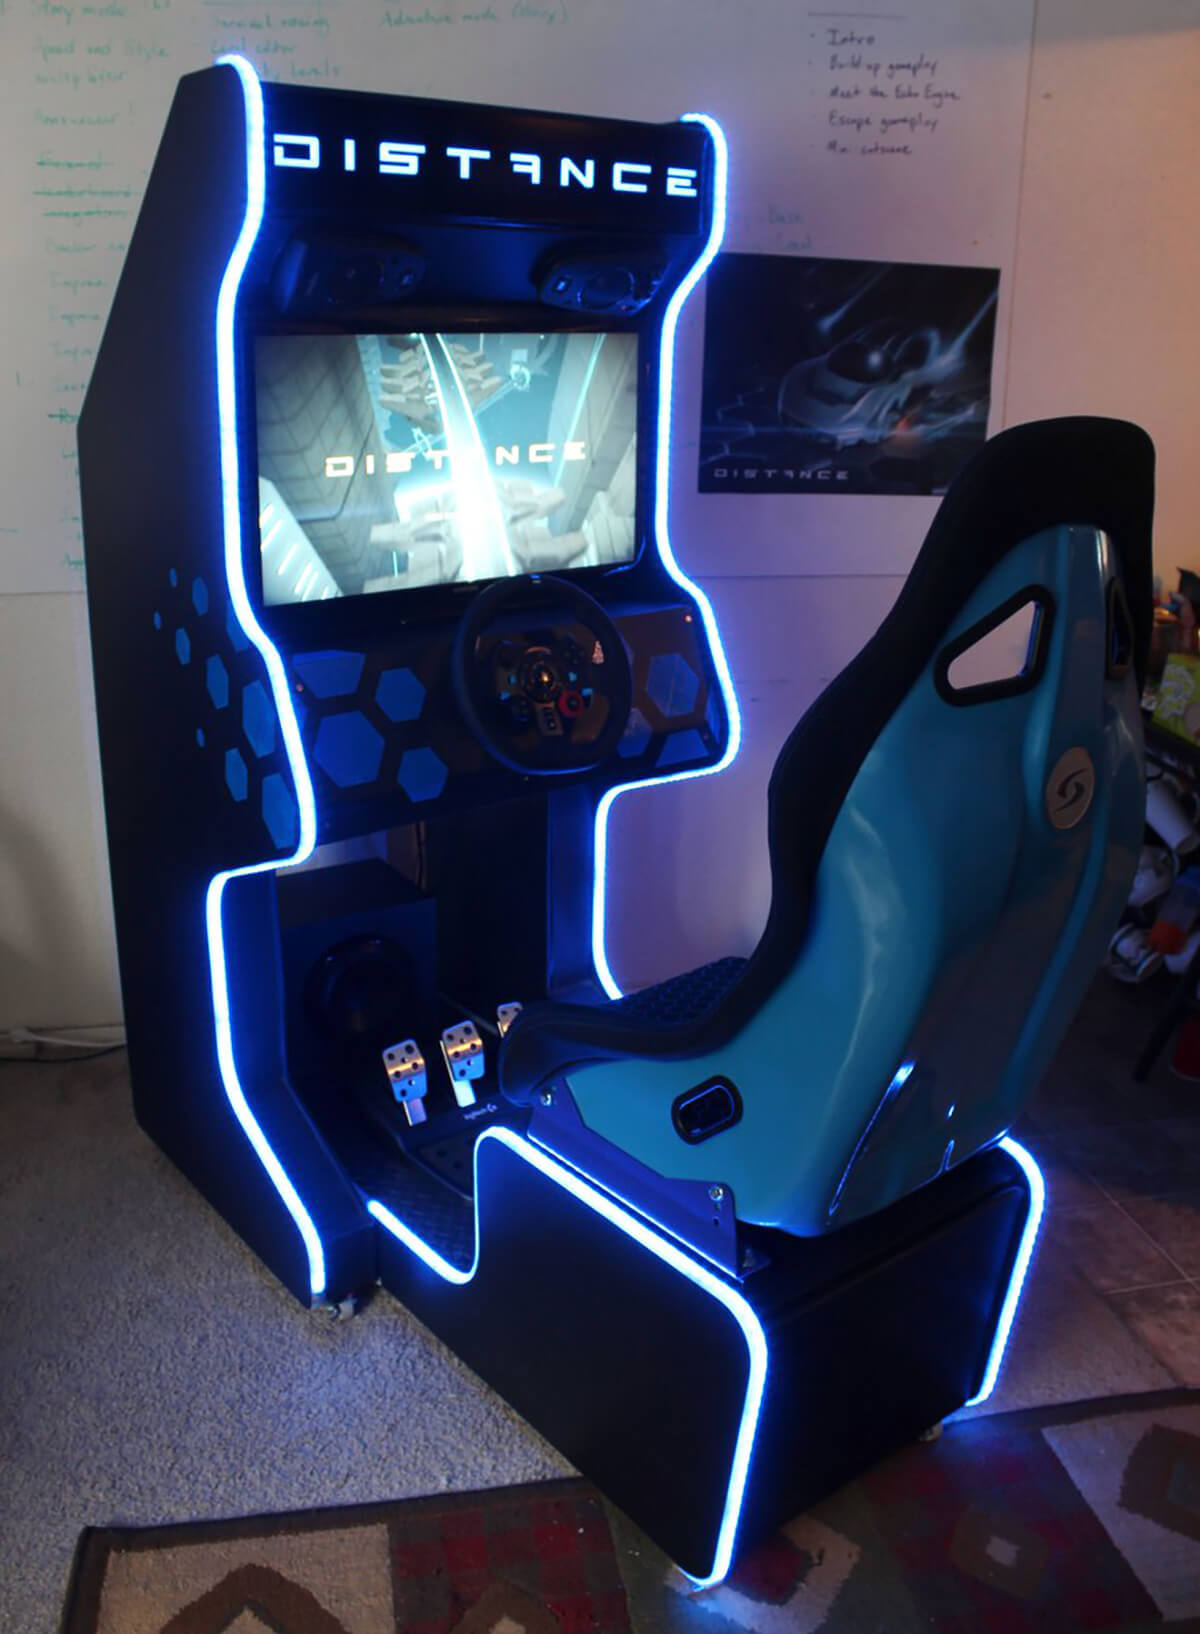 A handmade Distance arcade cabinet ready for delivery to a Kickstarter backer